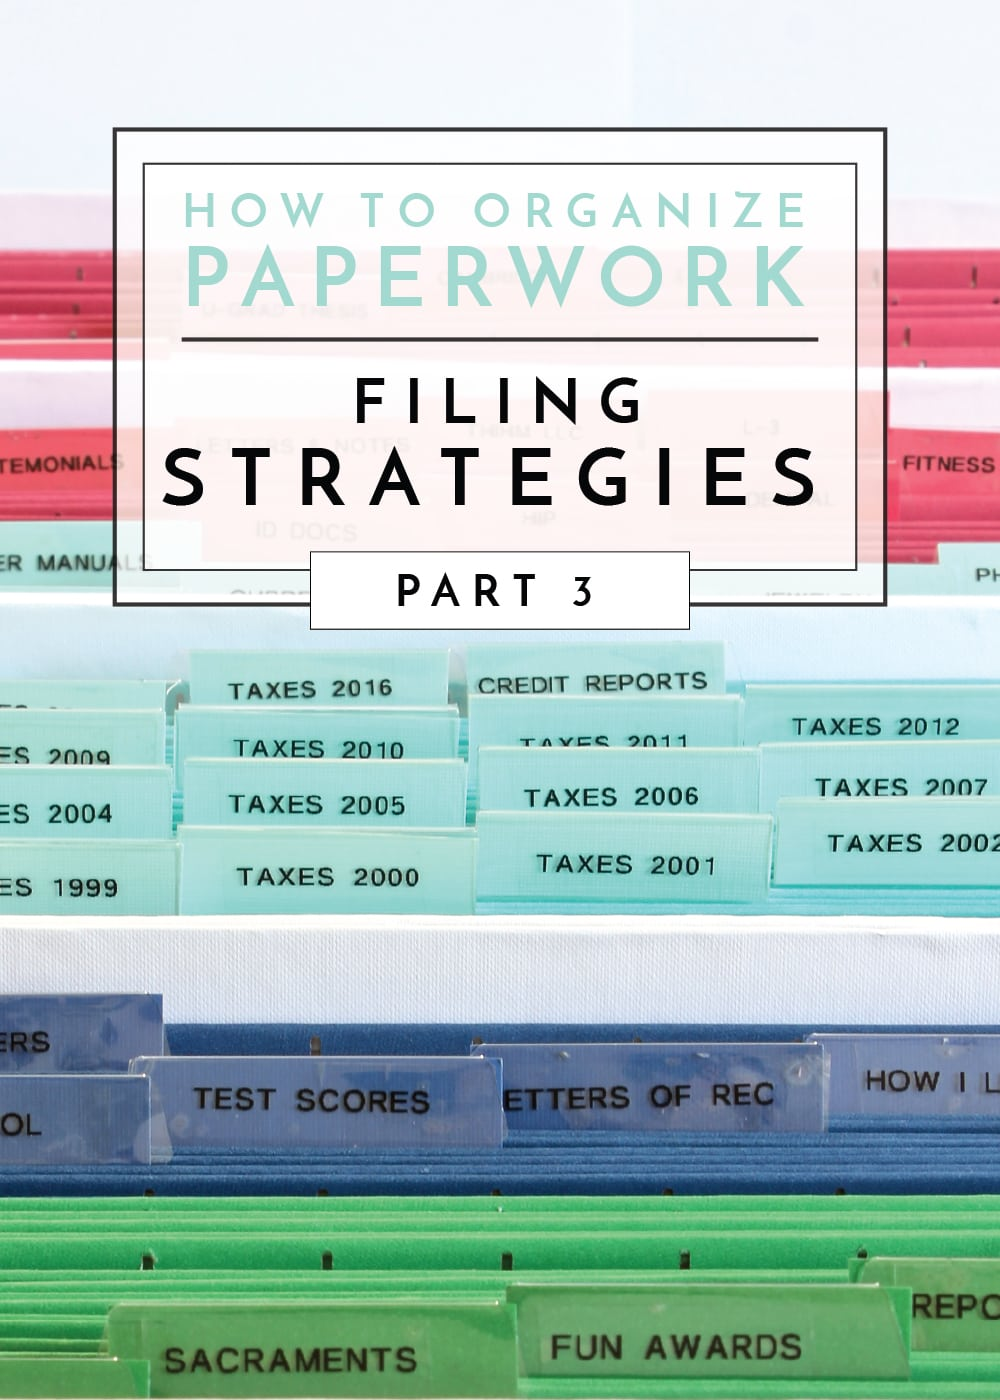 How To Organize Paperwork Part 3 Filing Strategies